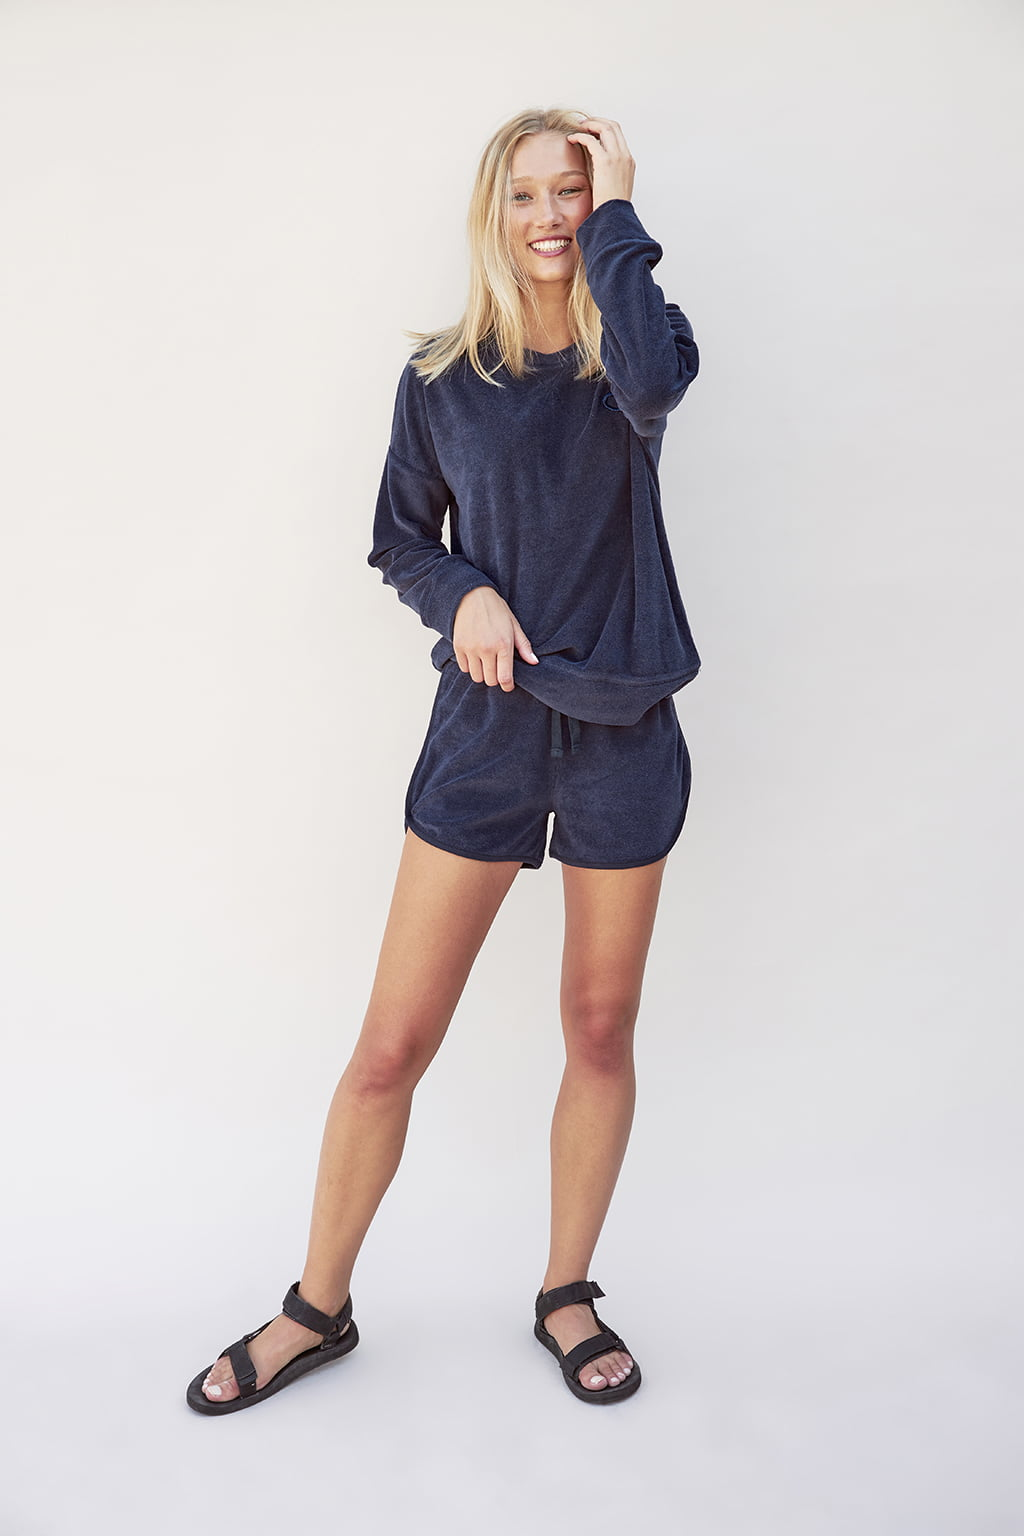 Totte sweater